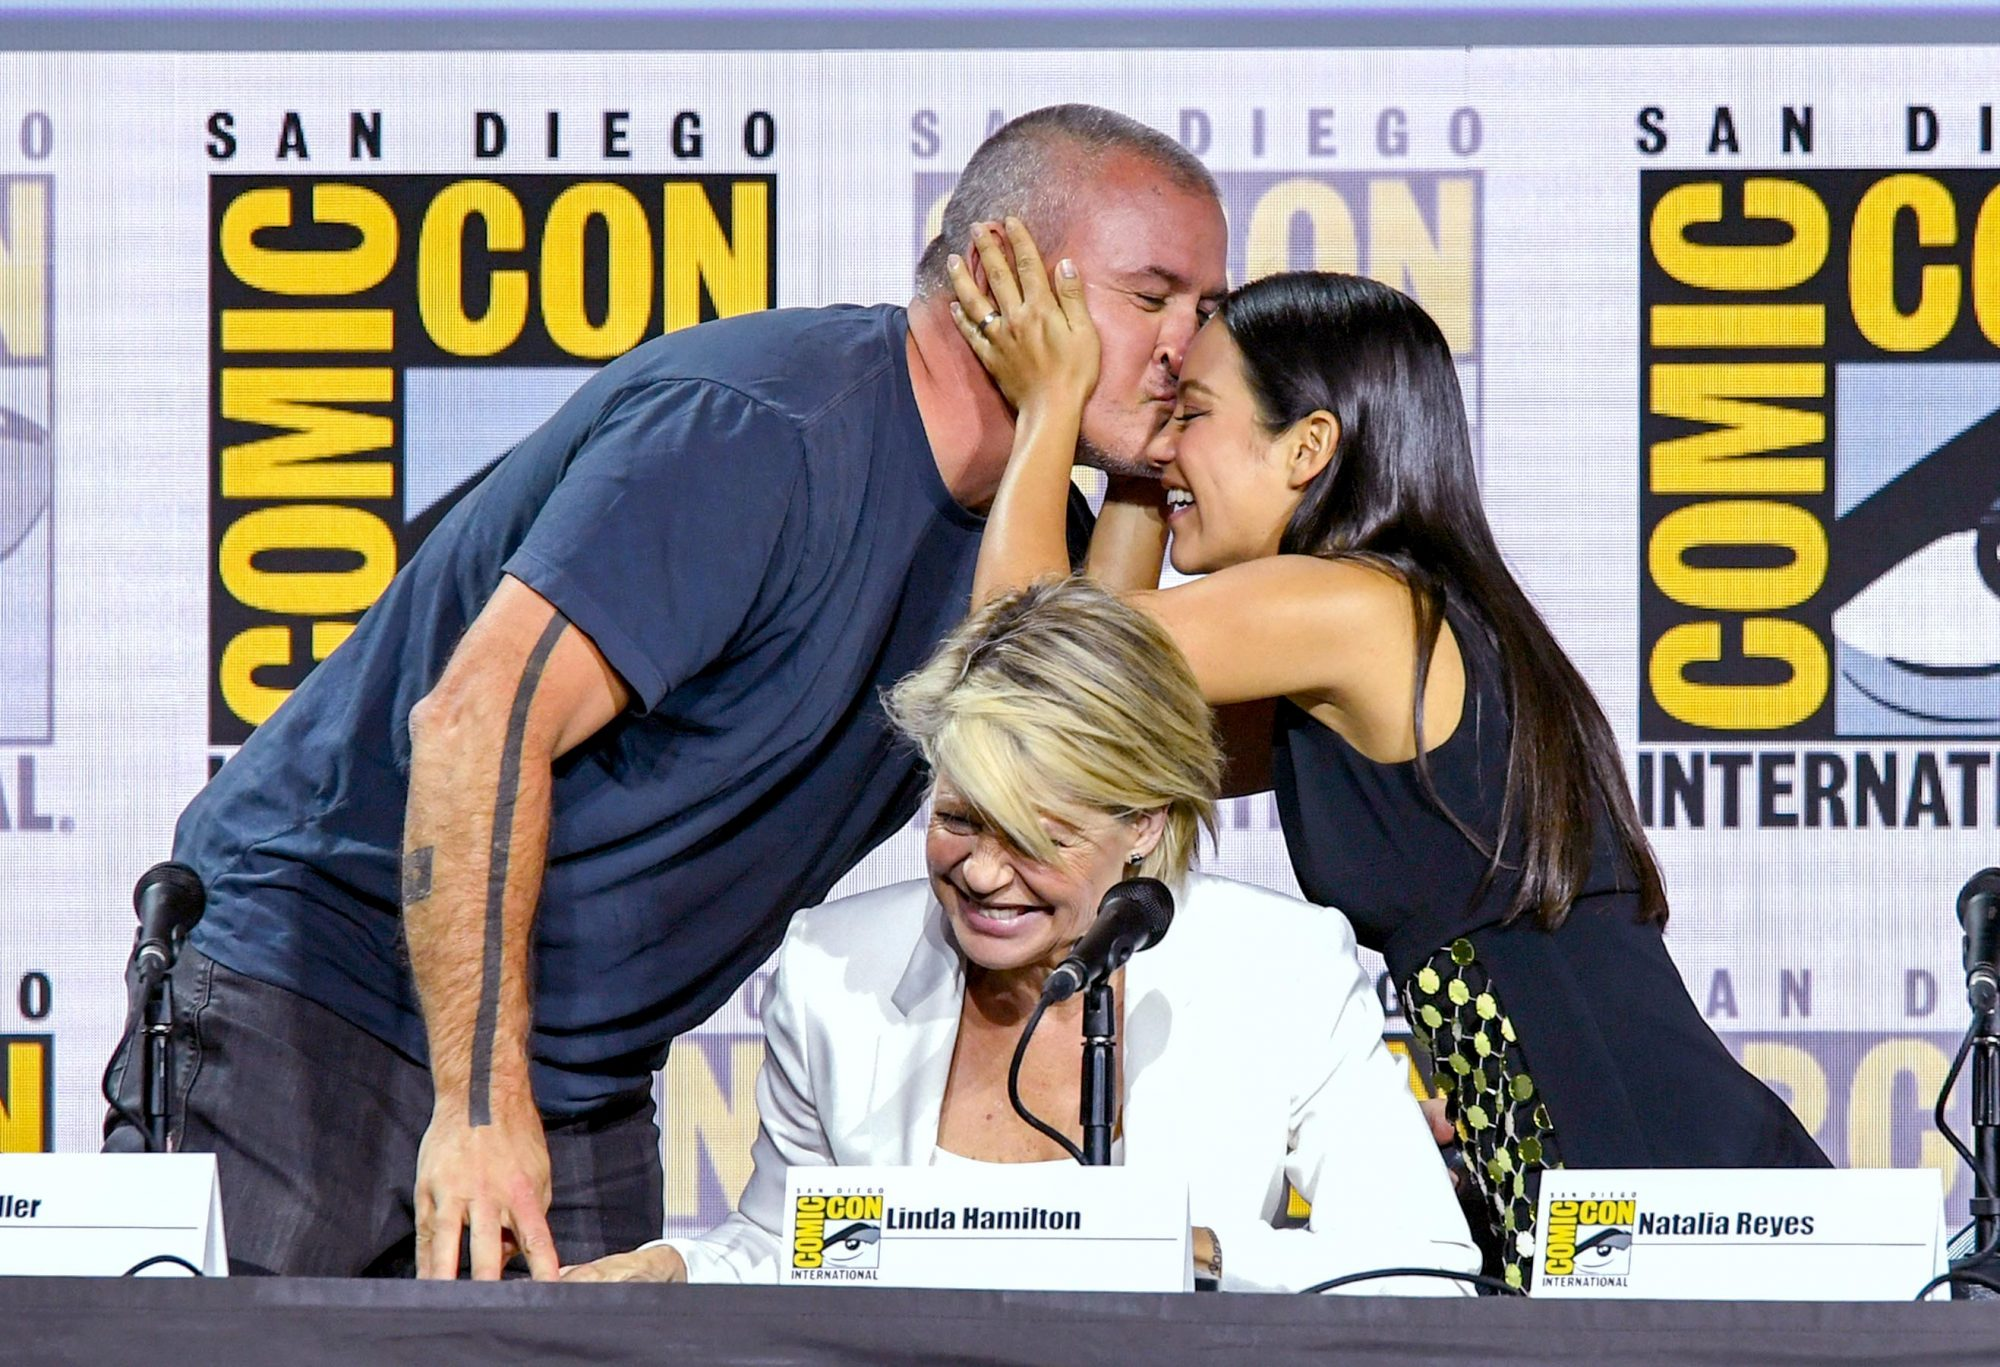 """SAN DIEGO, CALIFORNIA - JULY 18: (L-R) Tim Miller, Linda Hamilton, and Natalia Reyes speak at the """"Terminator: Dark Fate"""" panel during 2019 Comic-Con International at San Diego Convention Center on July 18, 2019 in San Diego, California. (Photo by Kevin Winter/Getty Images)"""